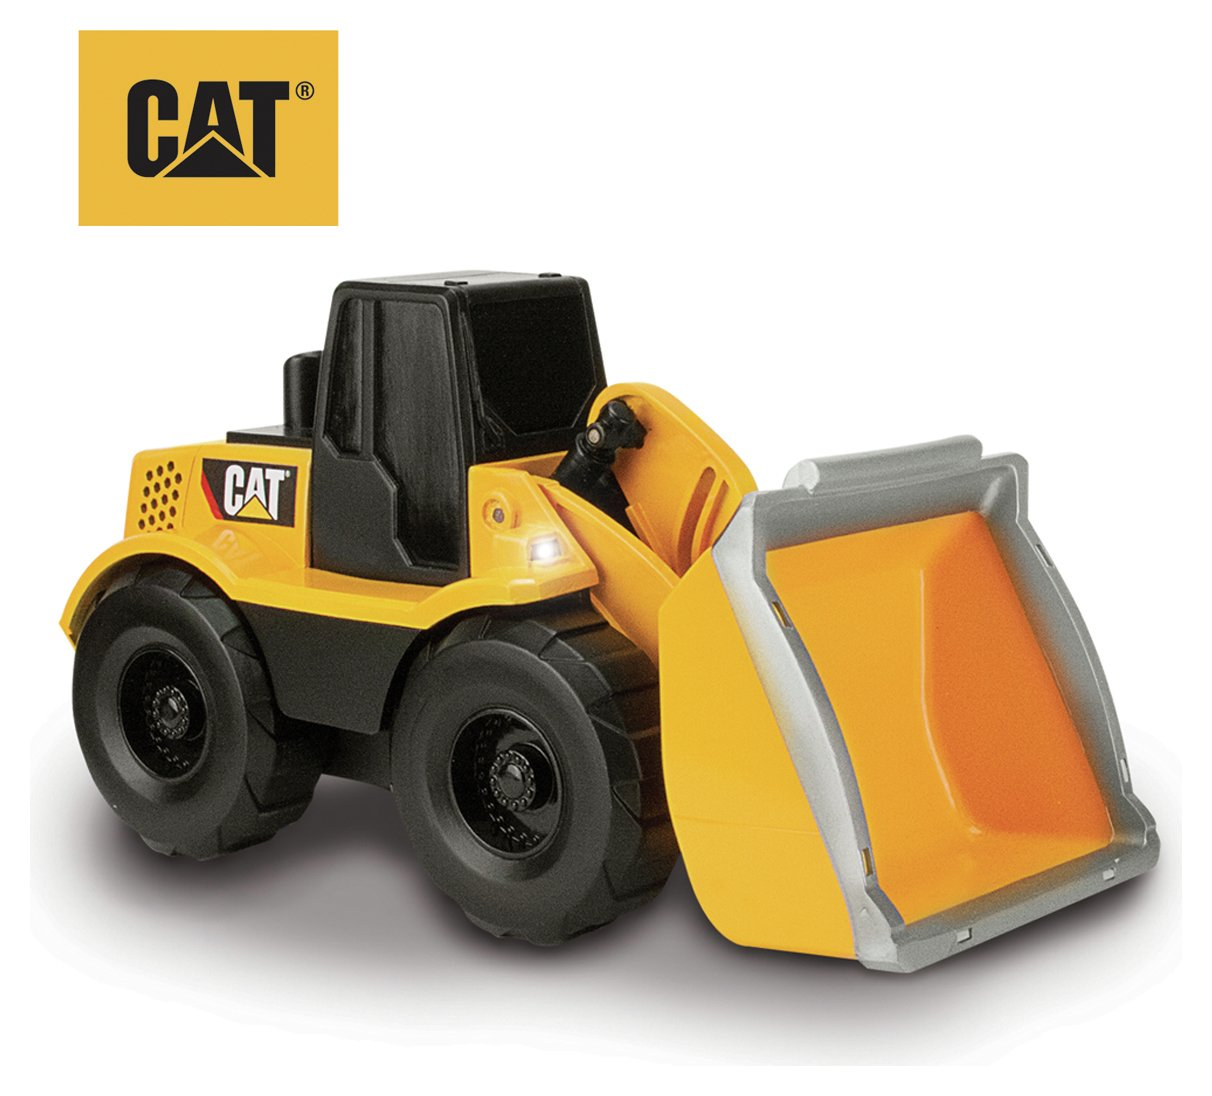 Image of CAT Big Builder Light and Sound Wheel Loader.